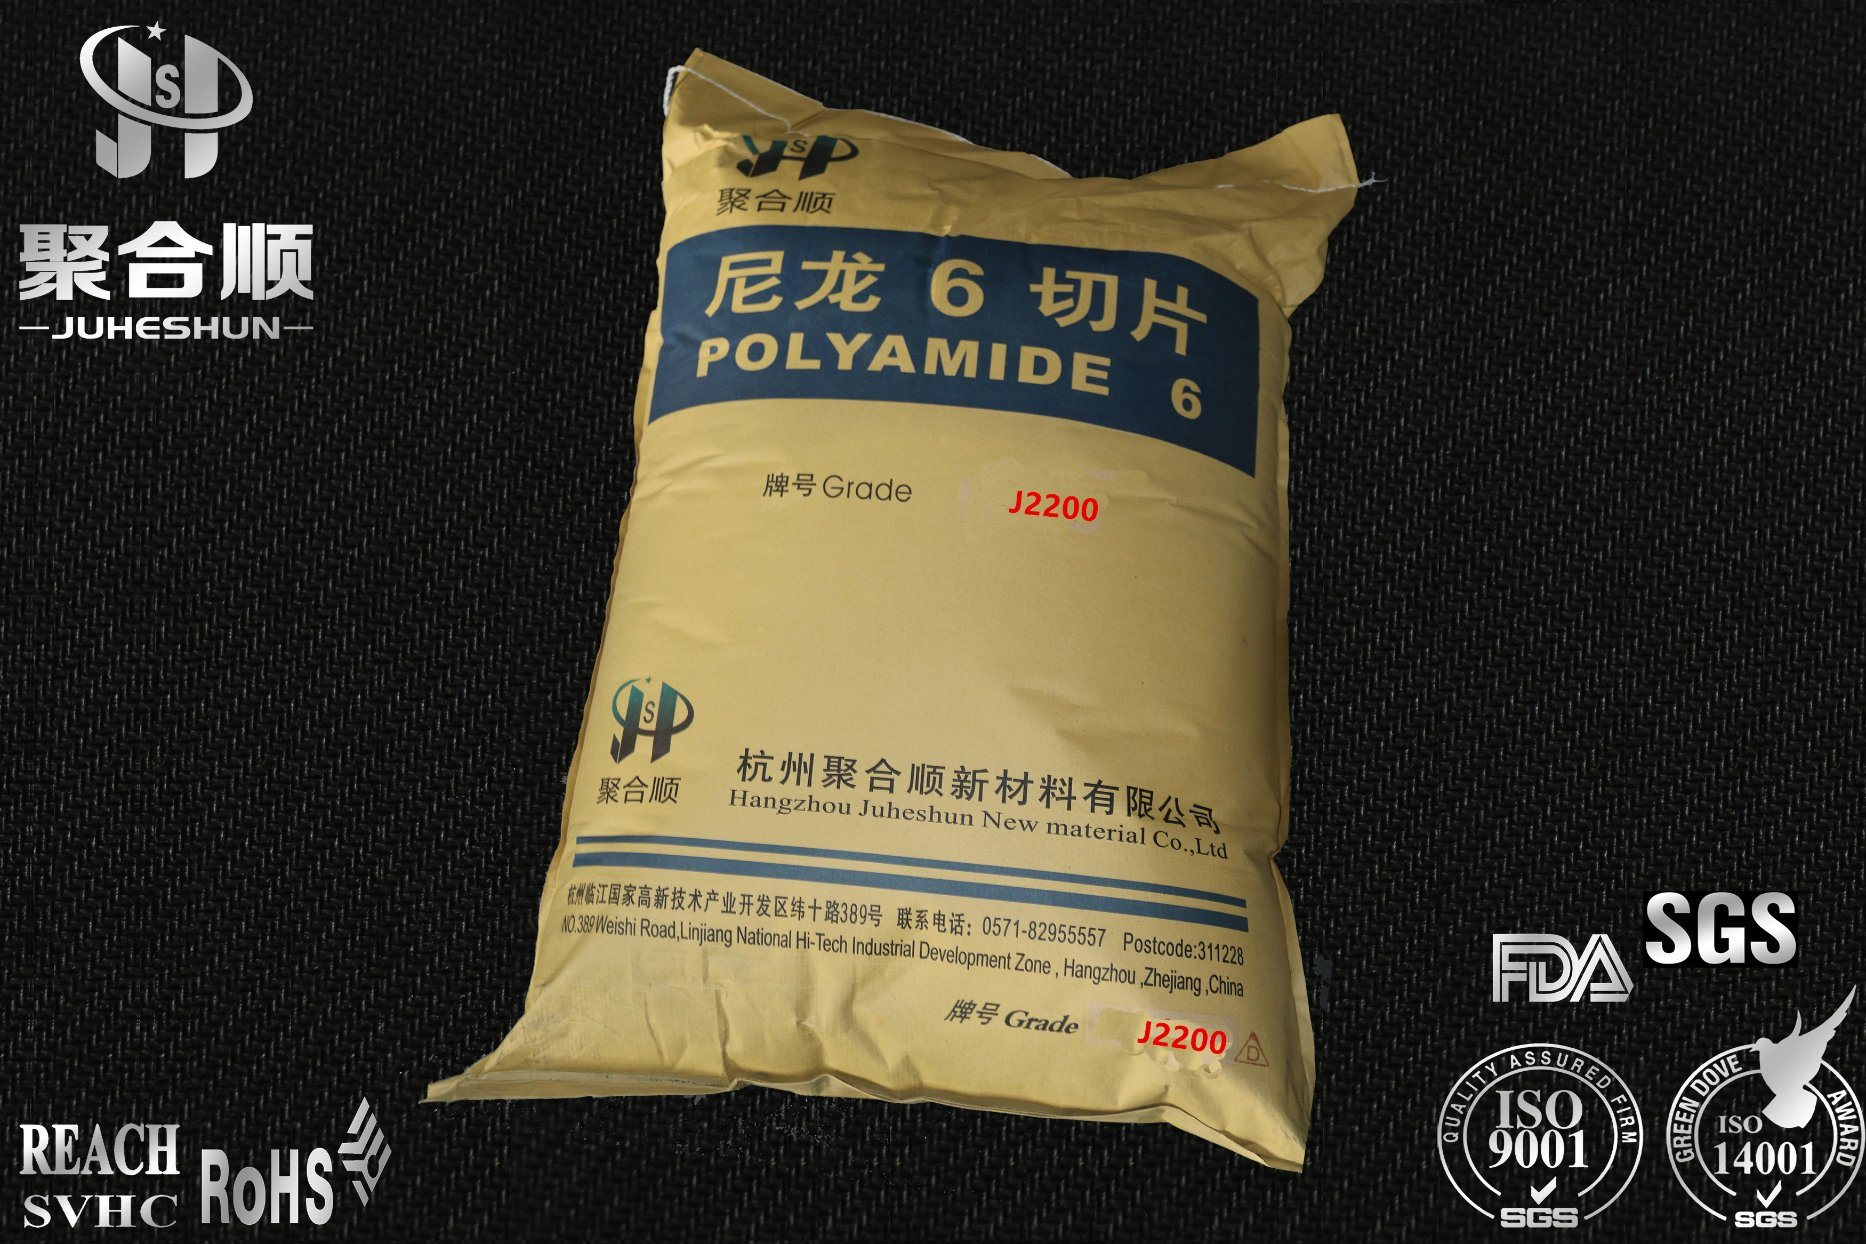 J2200/PA6/Nylon 6 Chips/Polyamide 6 Granules/Pellet for Engineering Grade